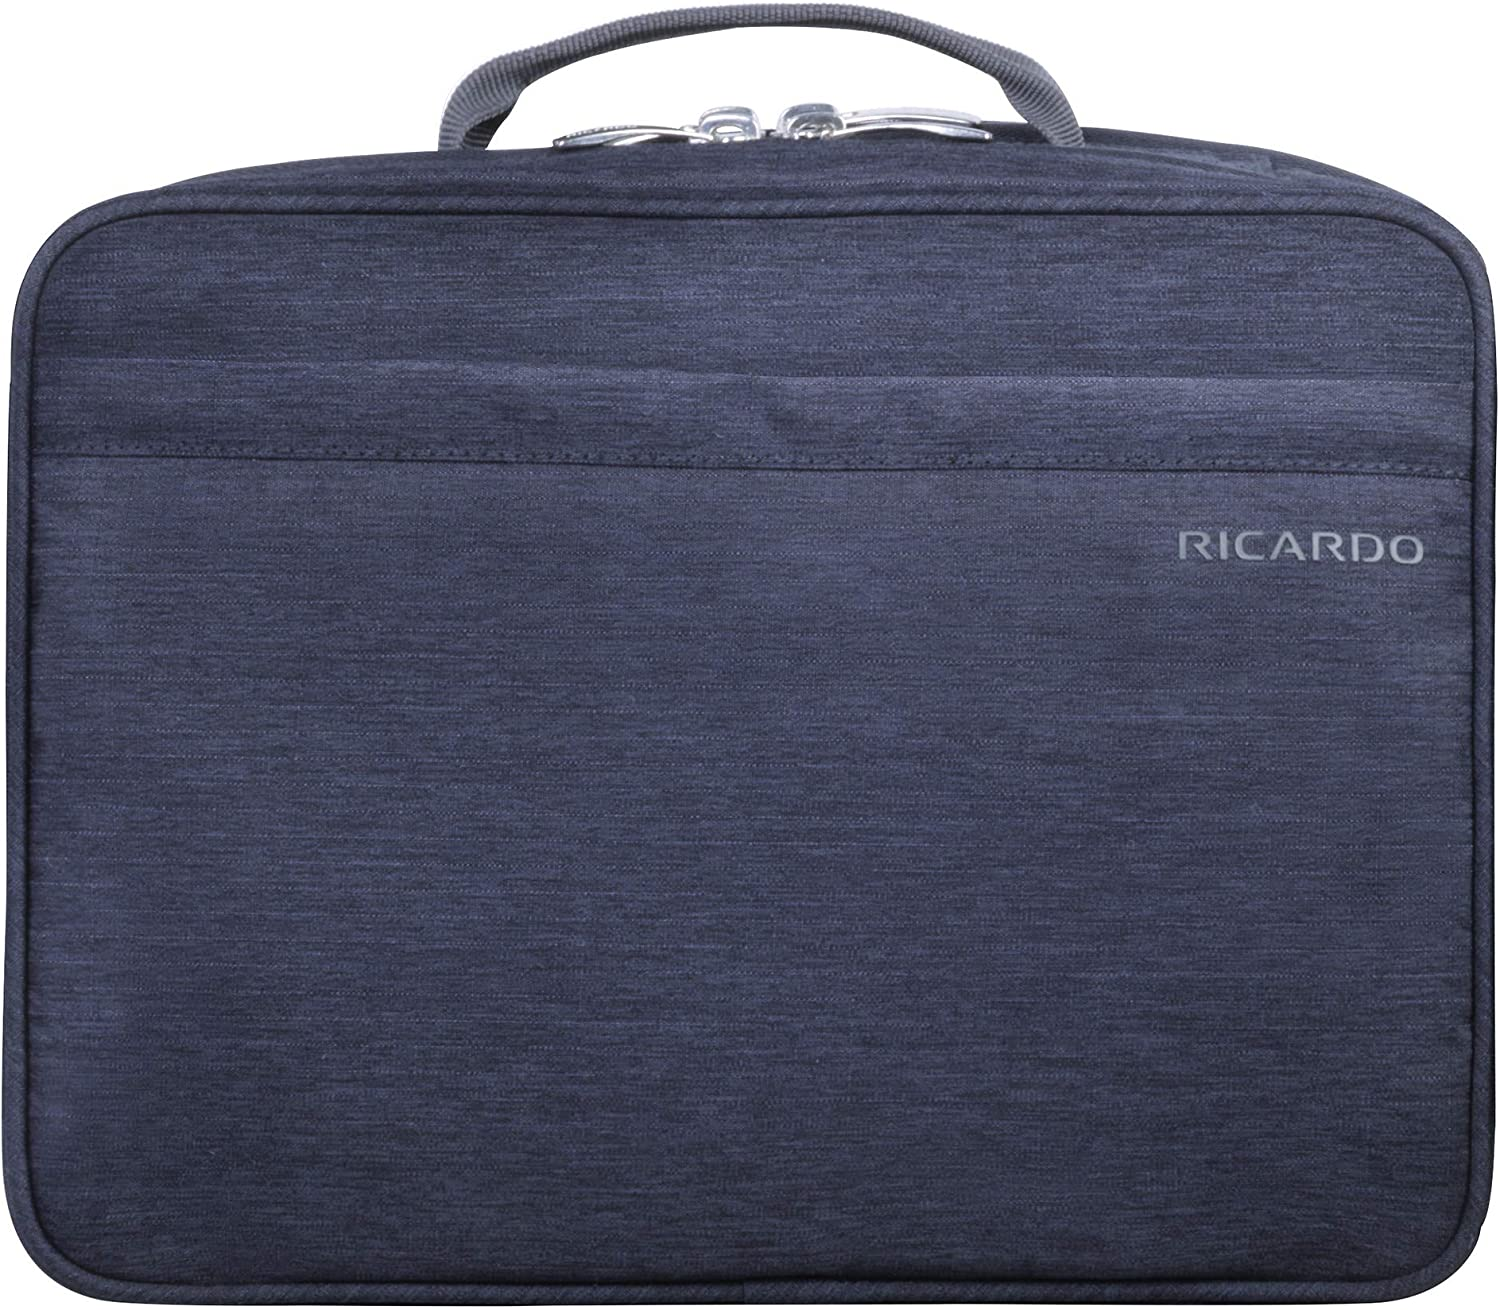 Memphis Mall Ricardo Beverly Hills Packing Travel Essentials Limited time trial price 2.0 D Graphite